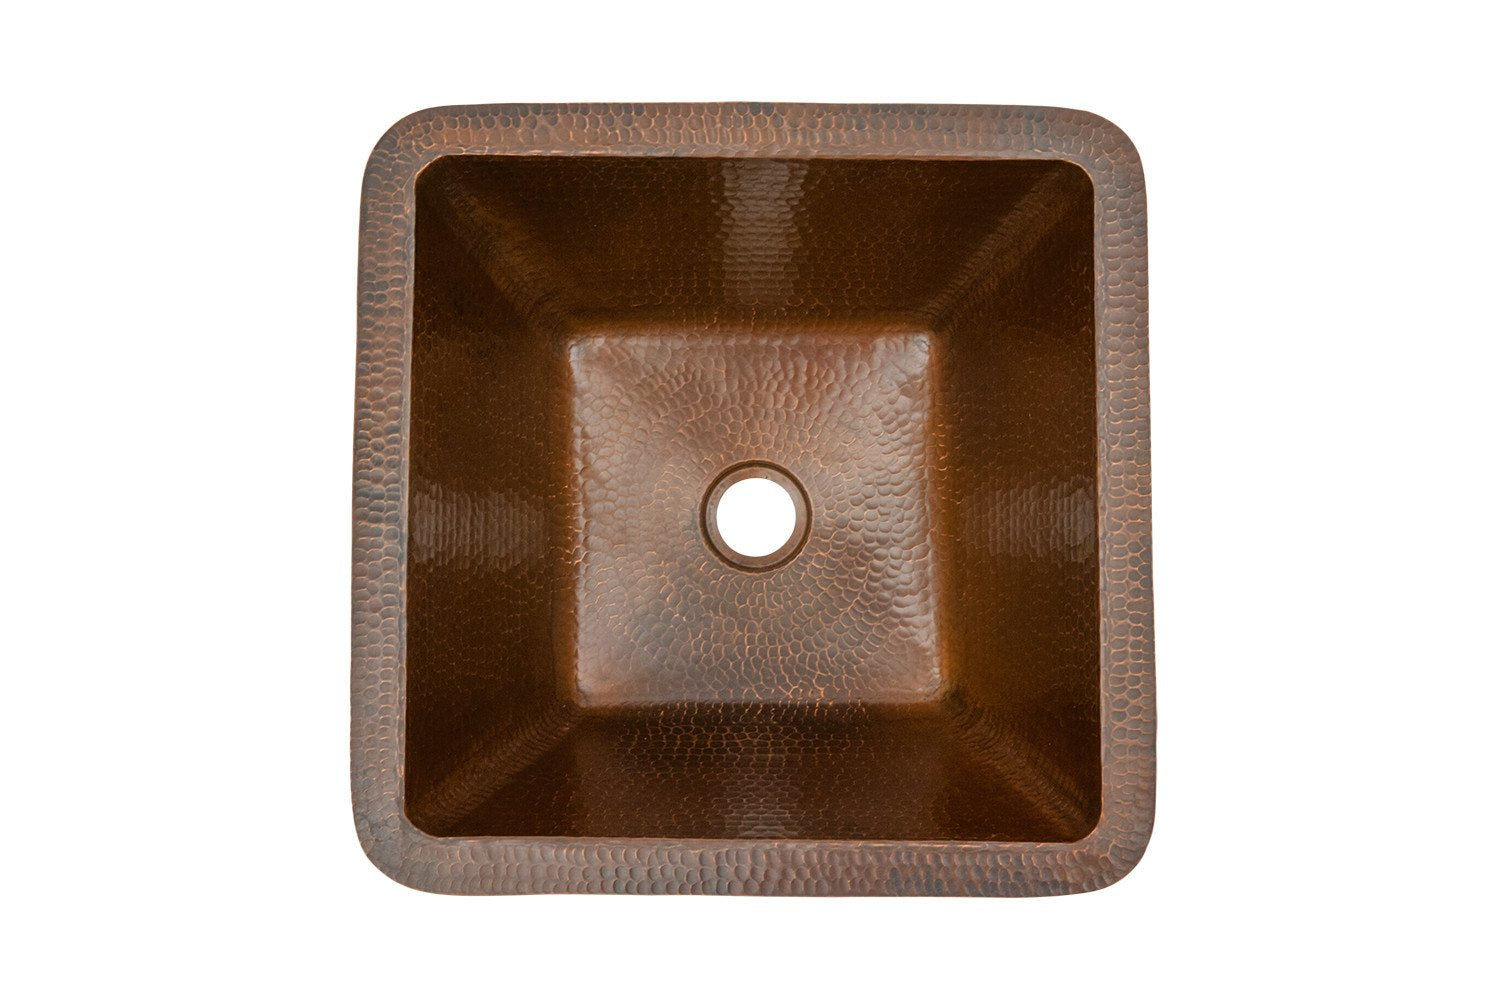 15 Square Under Counter Hammered Copper Bathroom Sink Fixture